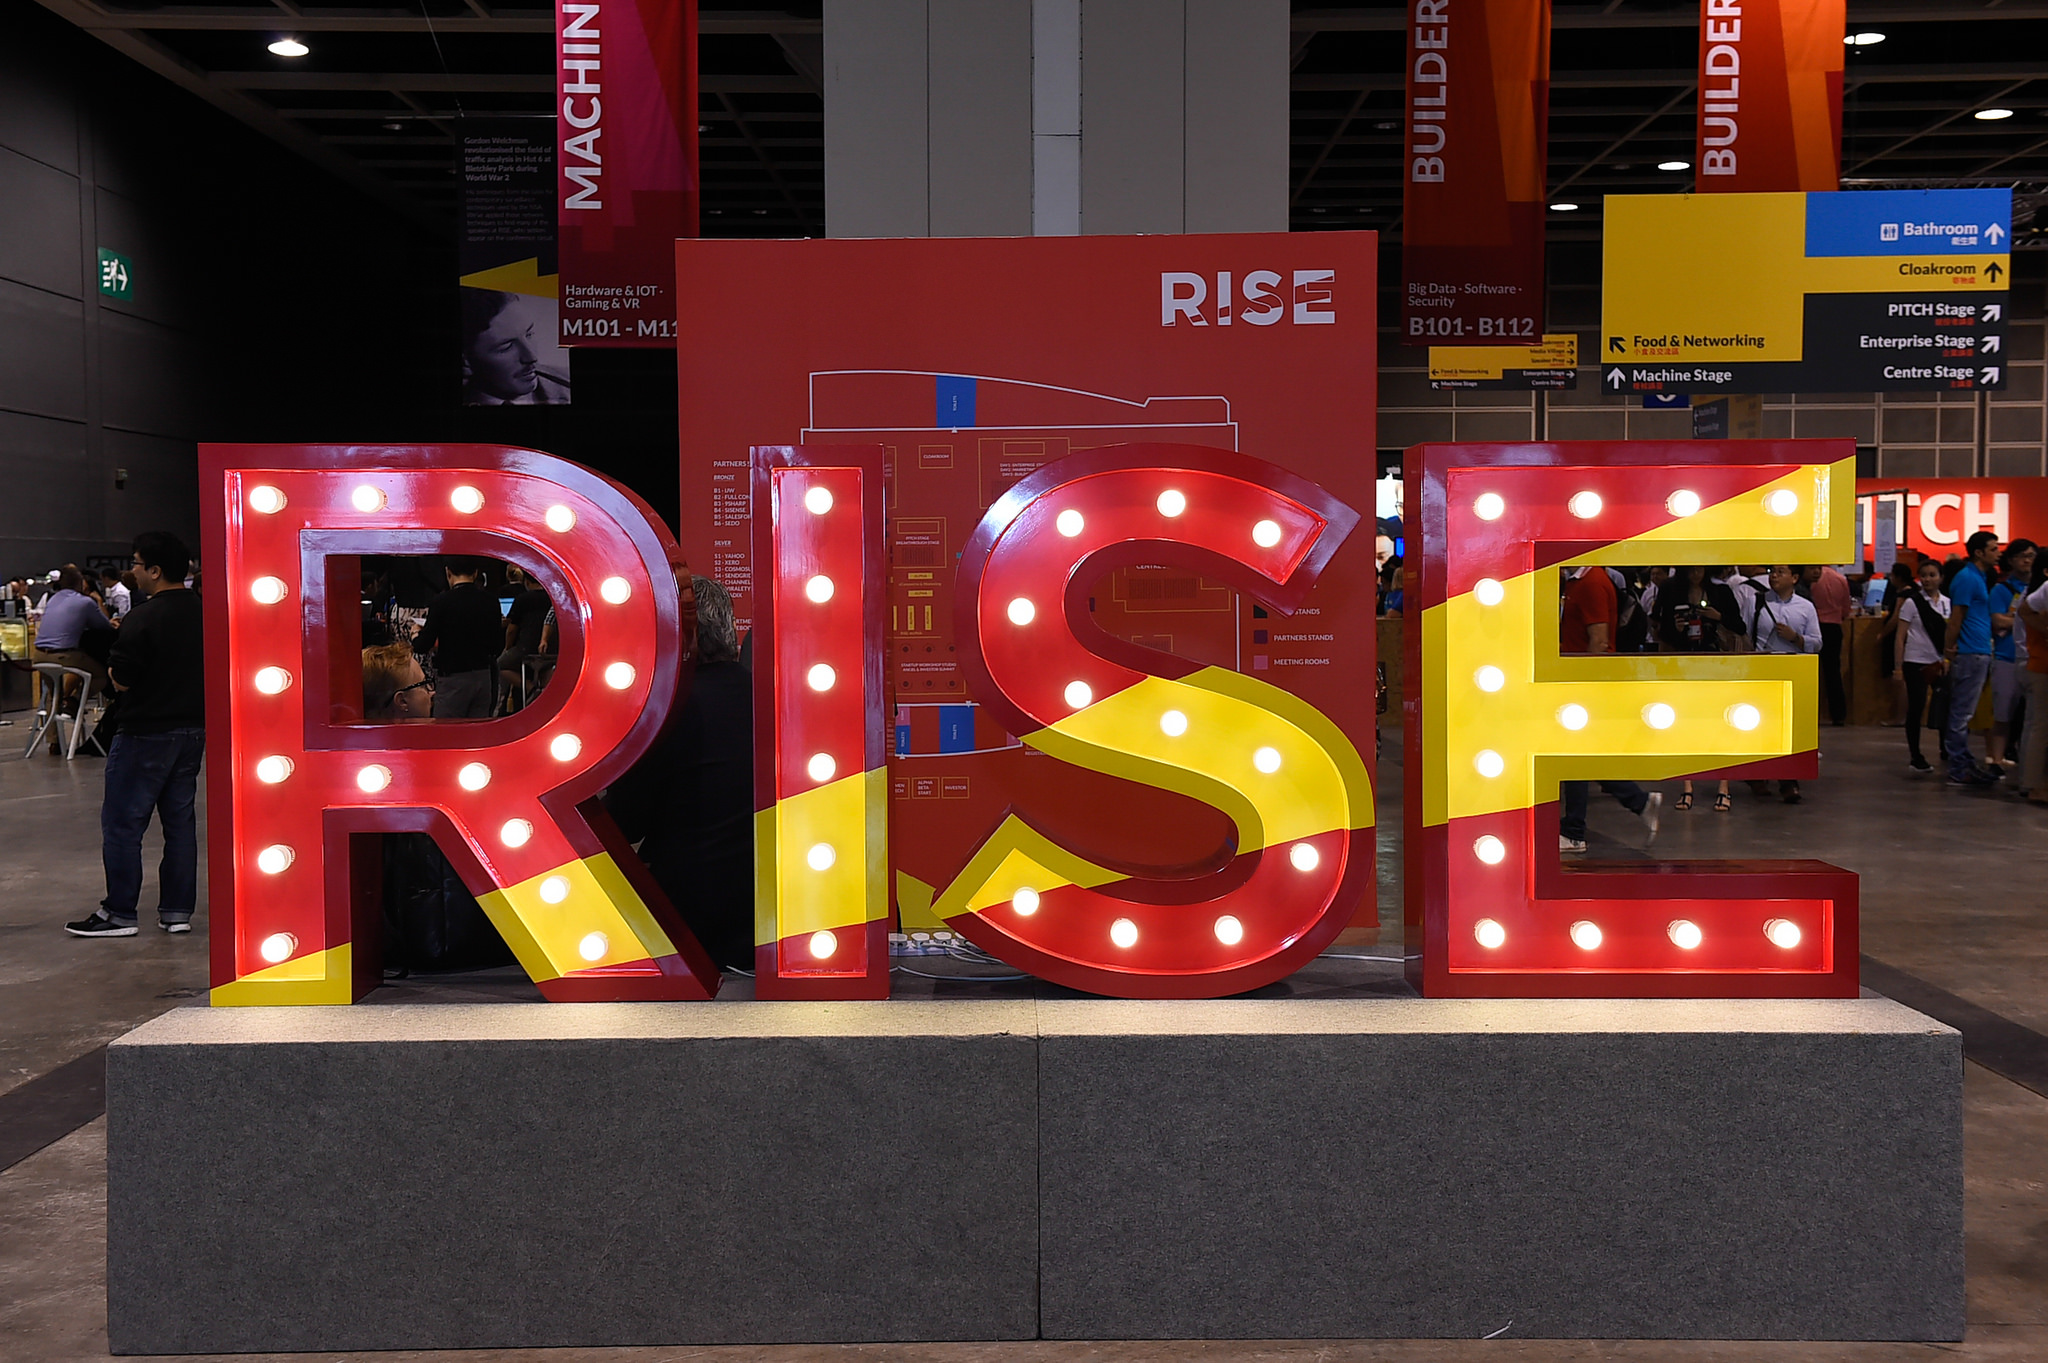 Breeze.io is Going to be at RISE Conference this Year!